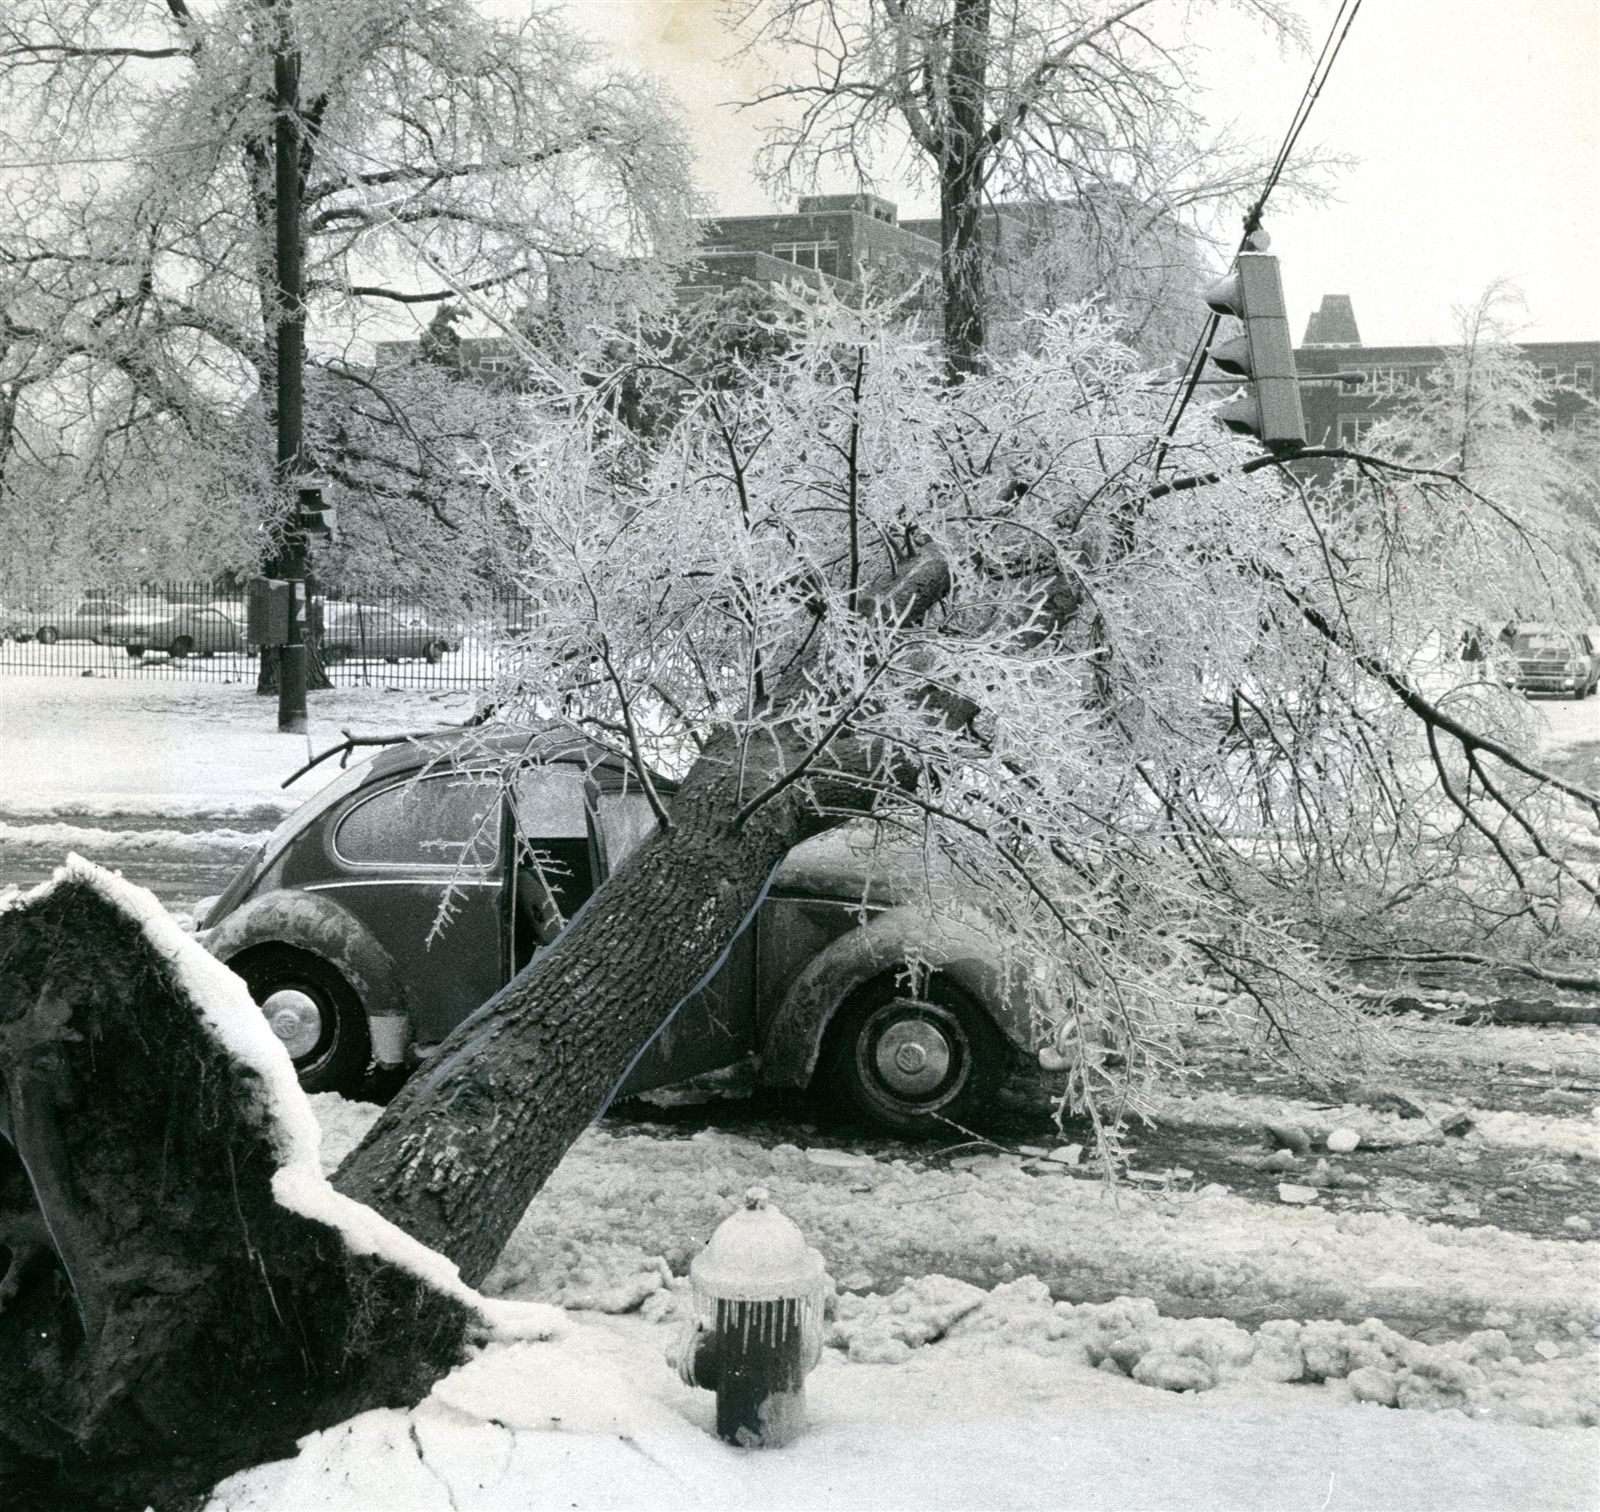 10. The Ice Storm of 1976 -- It hit in early March and caused tens of thousands to lose power for days.